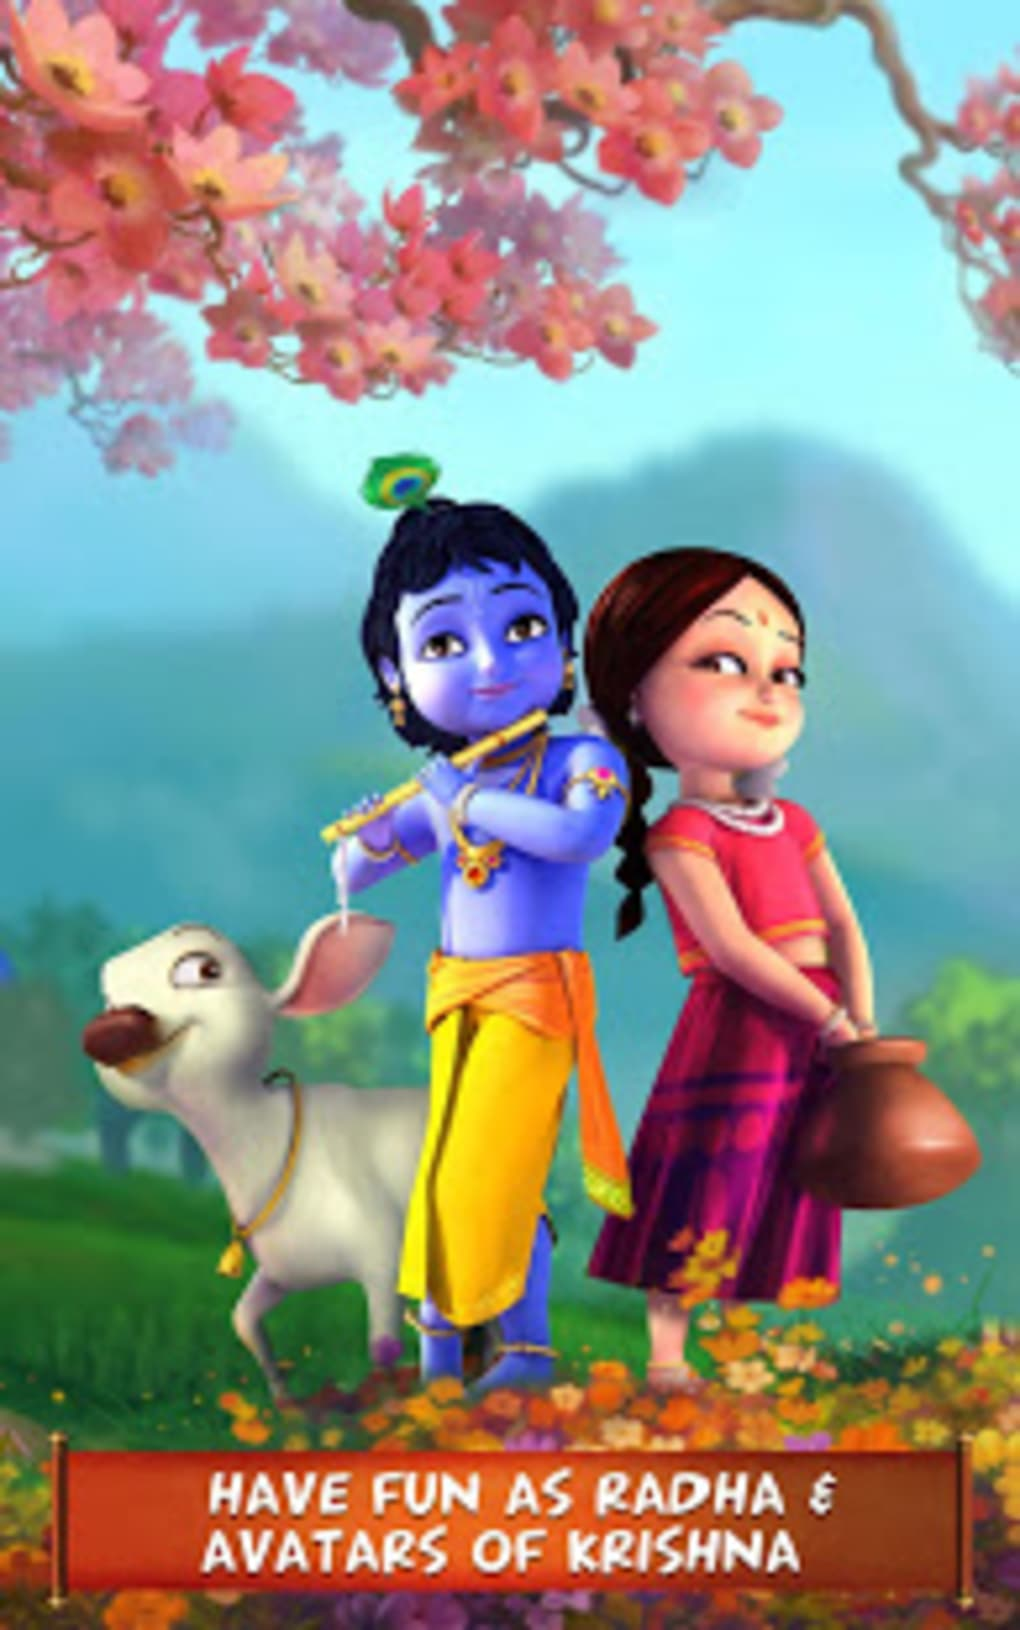 little krishna screenshot